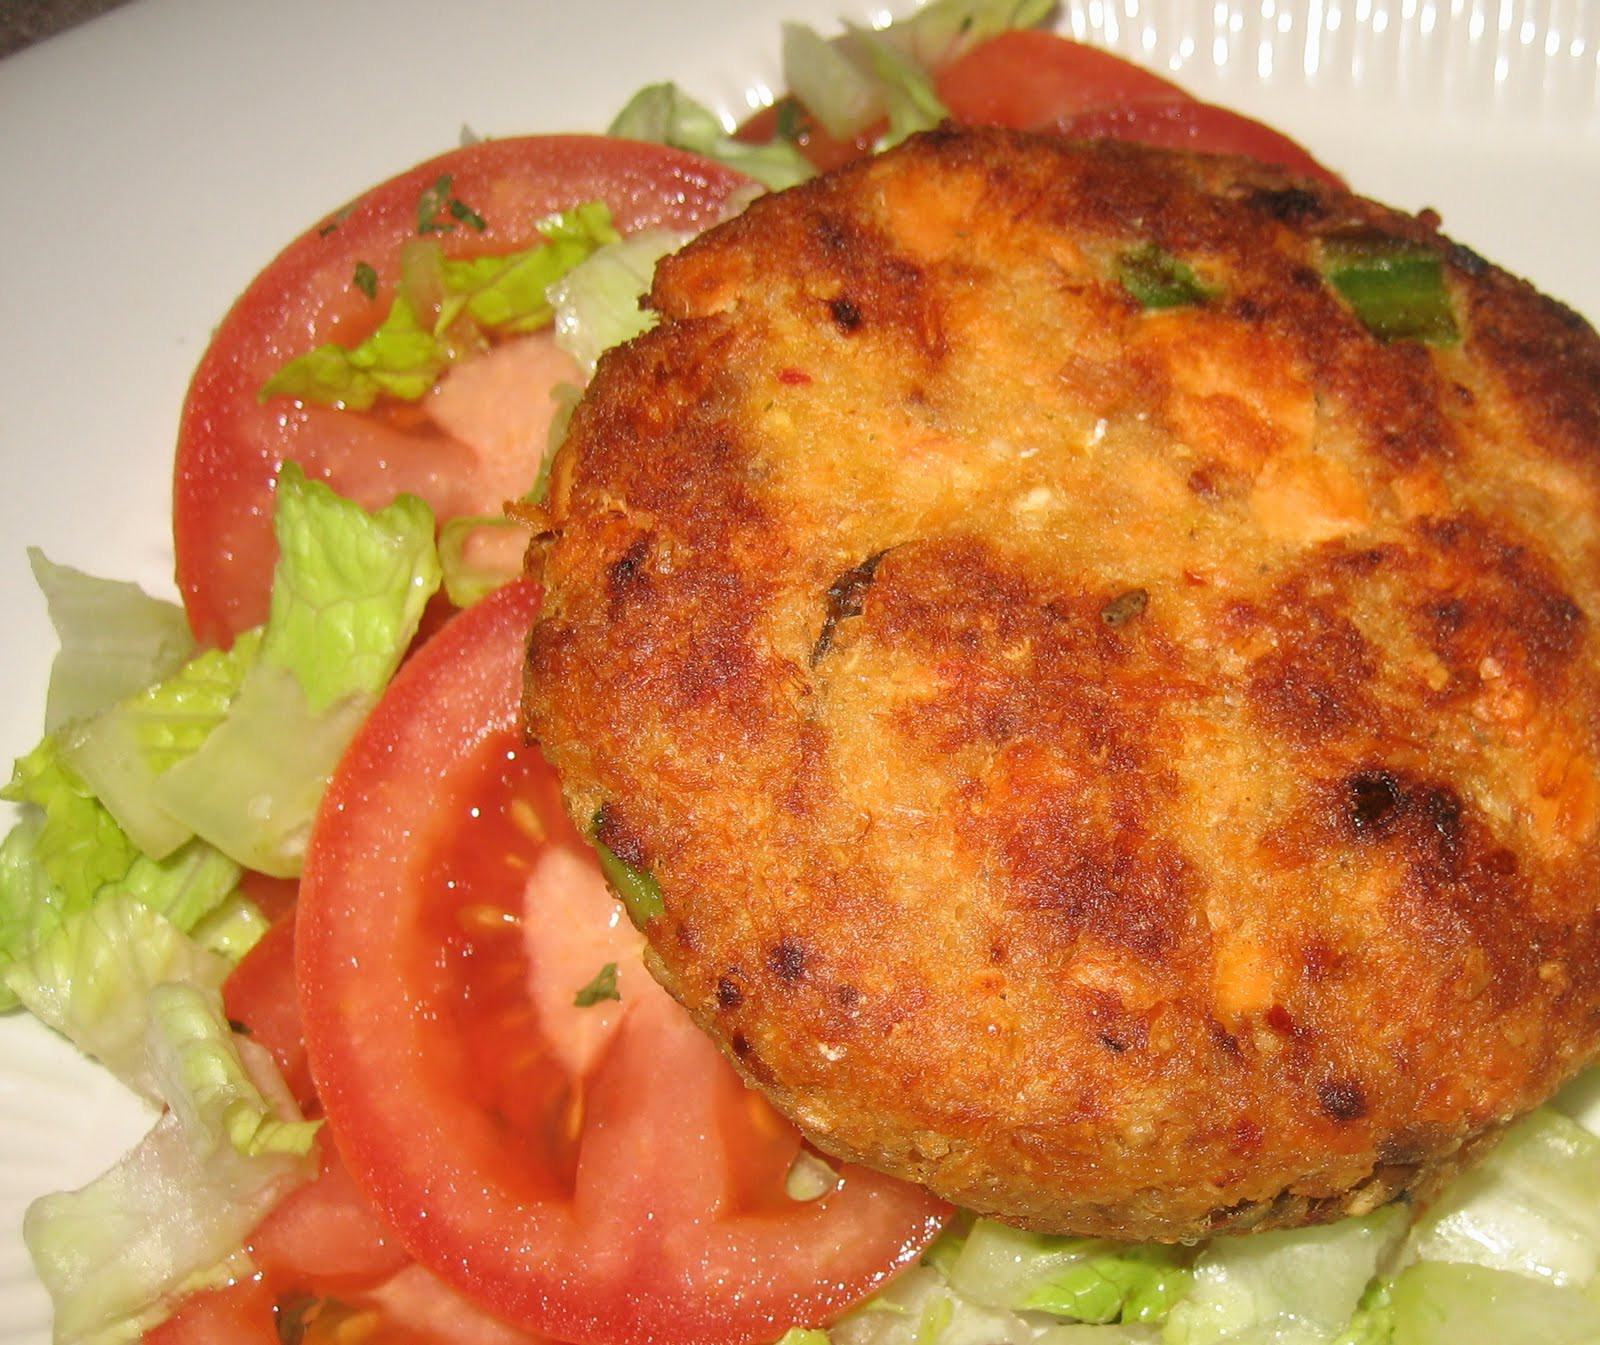 Salmon Cake Recipe  Reel Good Recipes Great Recipes Inspired by Great Movies